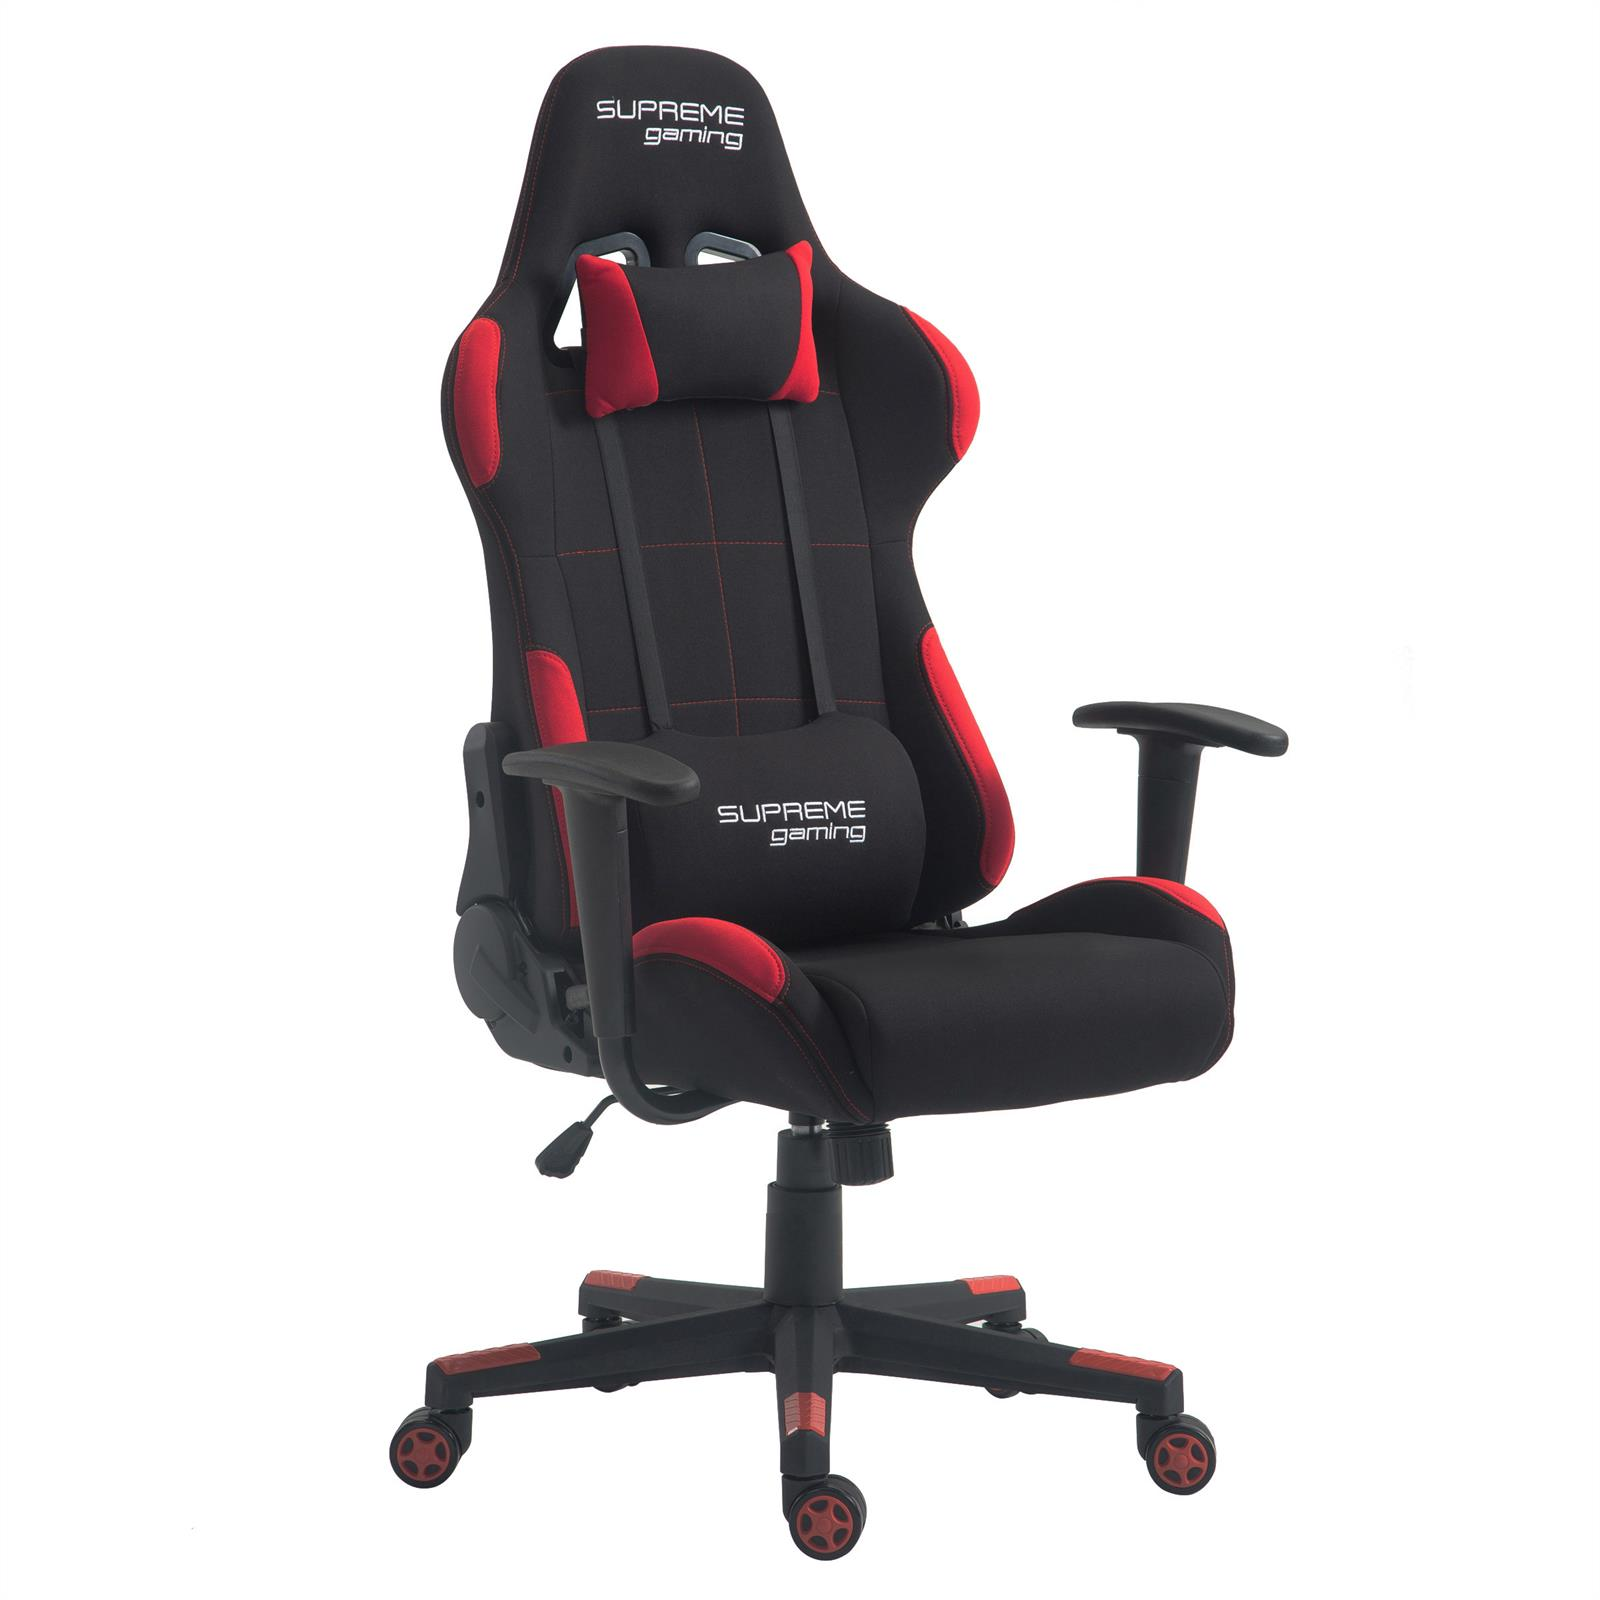 chaise de bureau gaming swift fauteuil gamer chair si ge style racing racer ebay. Black Bedroom Furniture Sets. Home Design Ideas